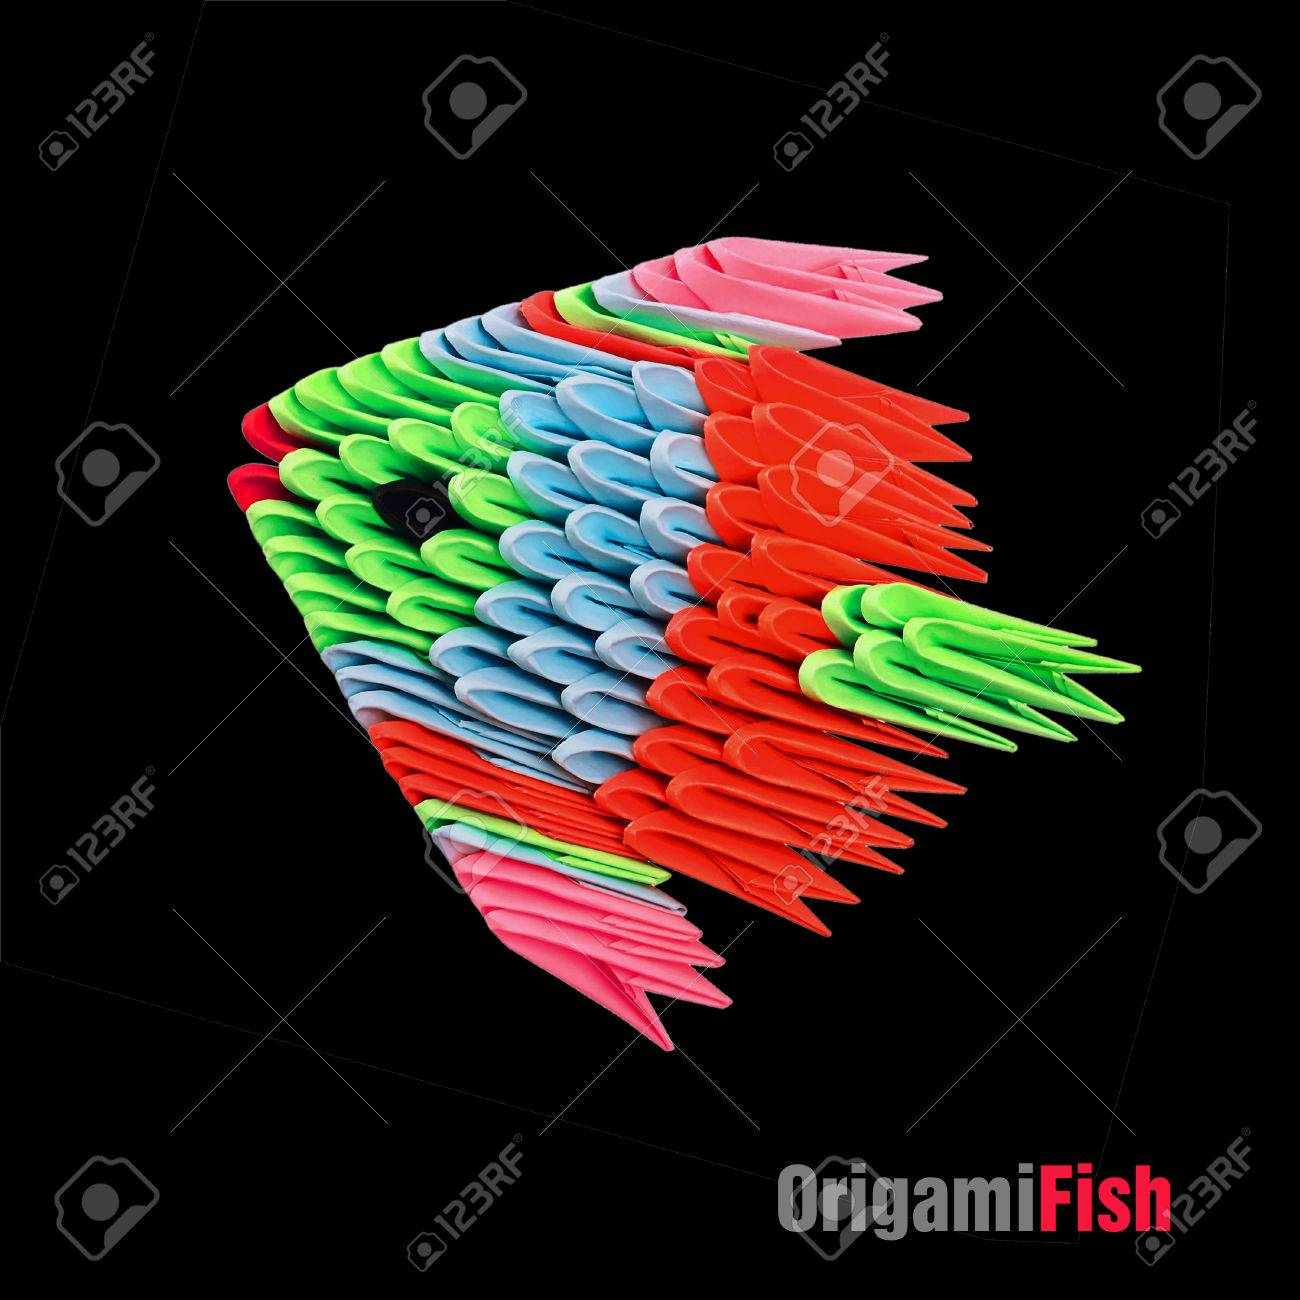 Origami tropical fish on the black background stock photo picture origami tropical fish on the black background stock photo 54169129 jeuxipadfo Images